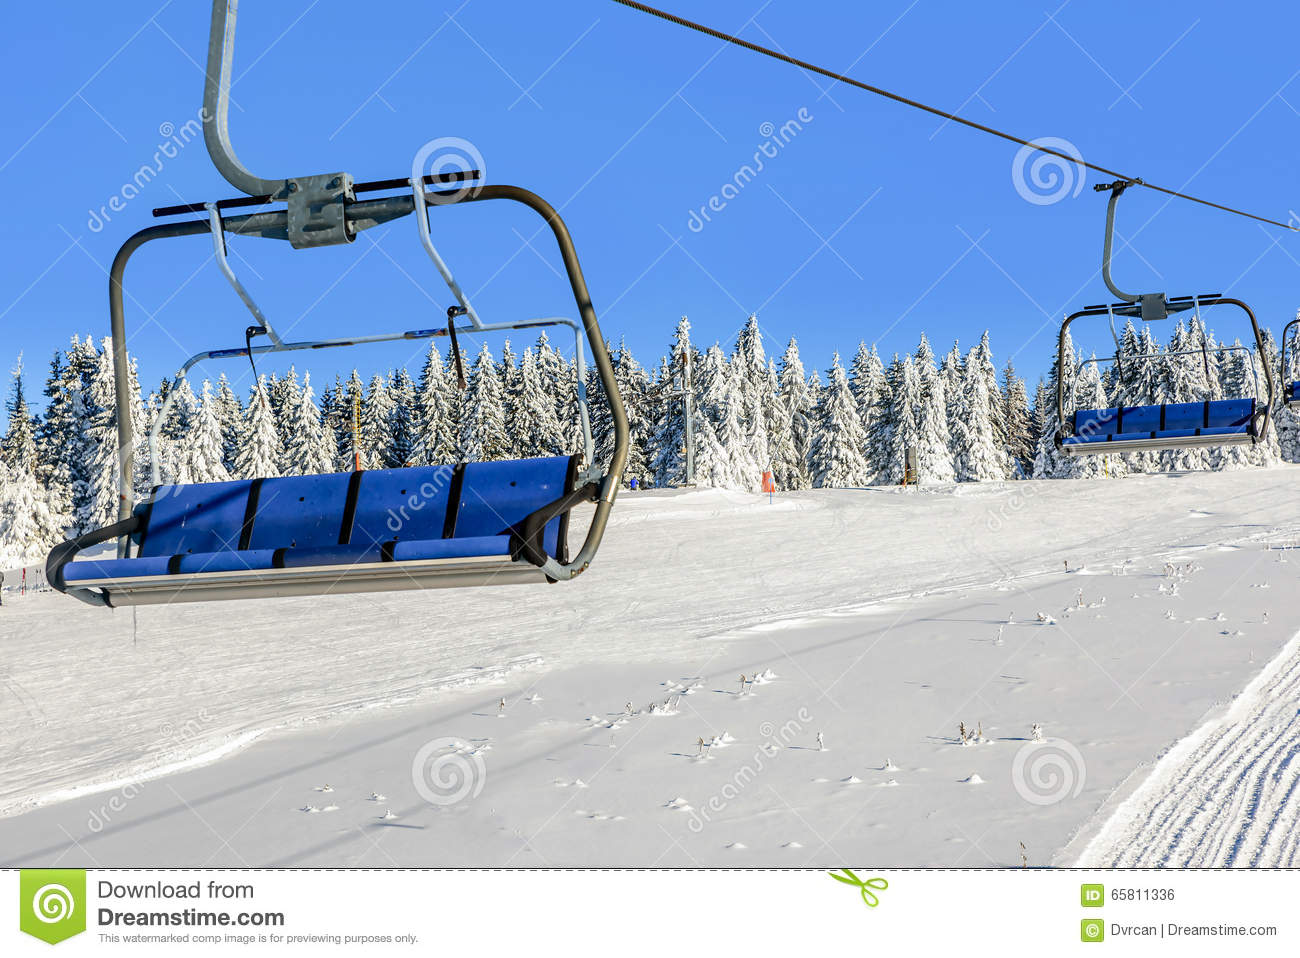 buy ski lift chair what is a rocking bus driver with chairs in kopaonik resort serbia